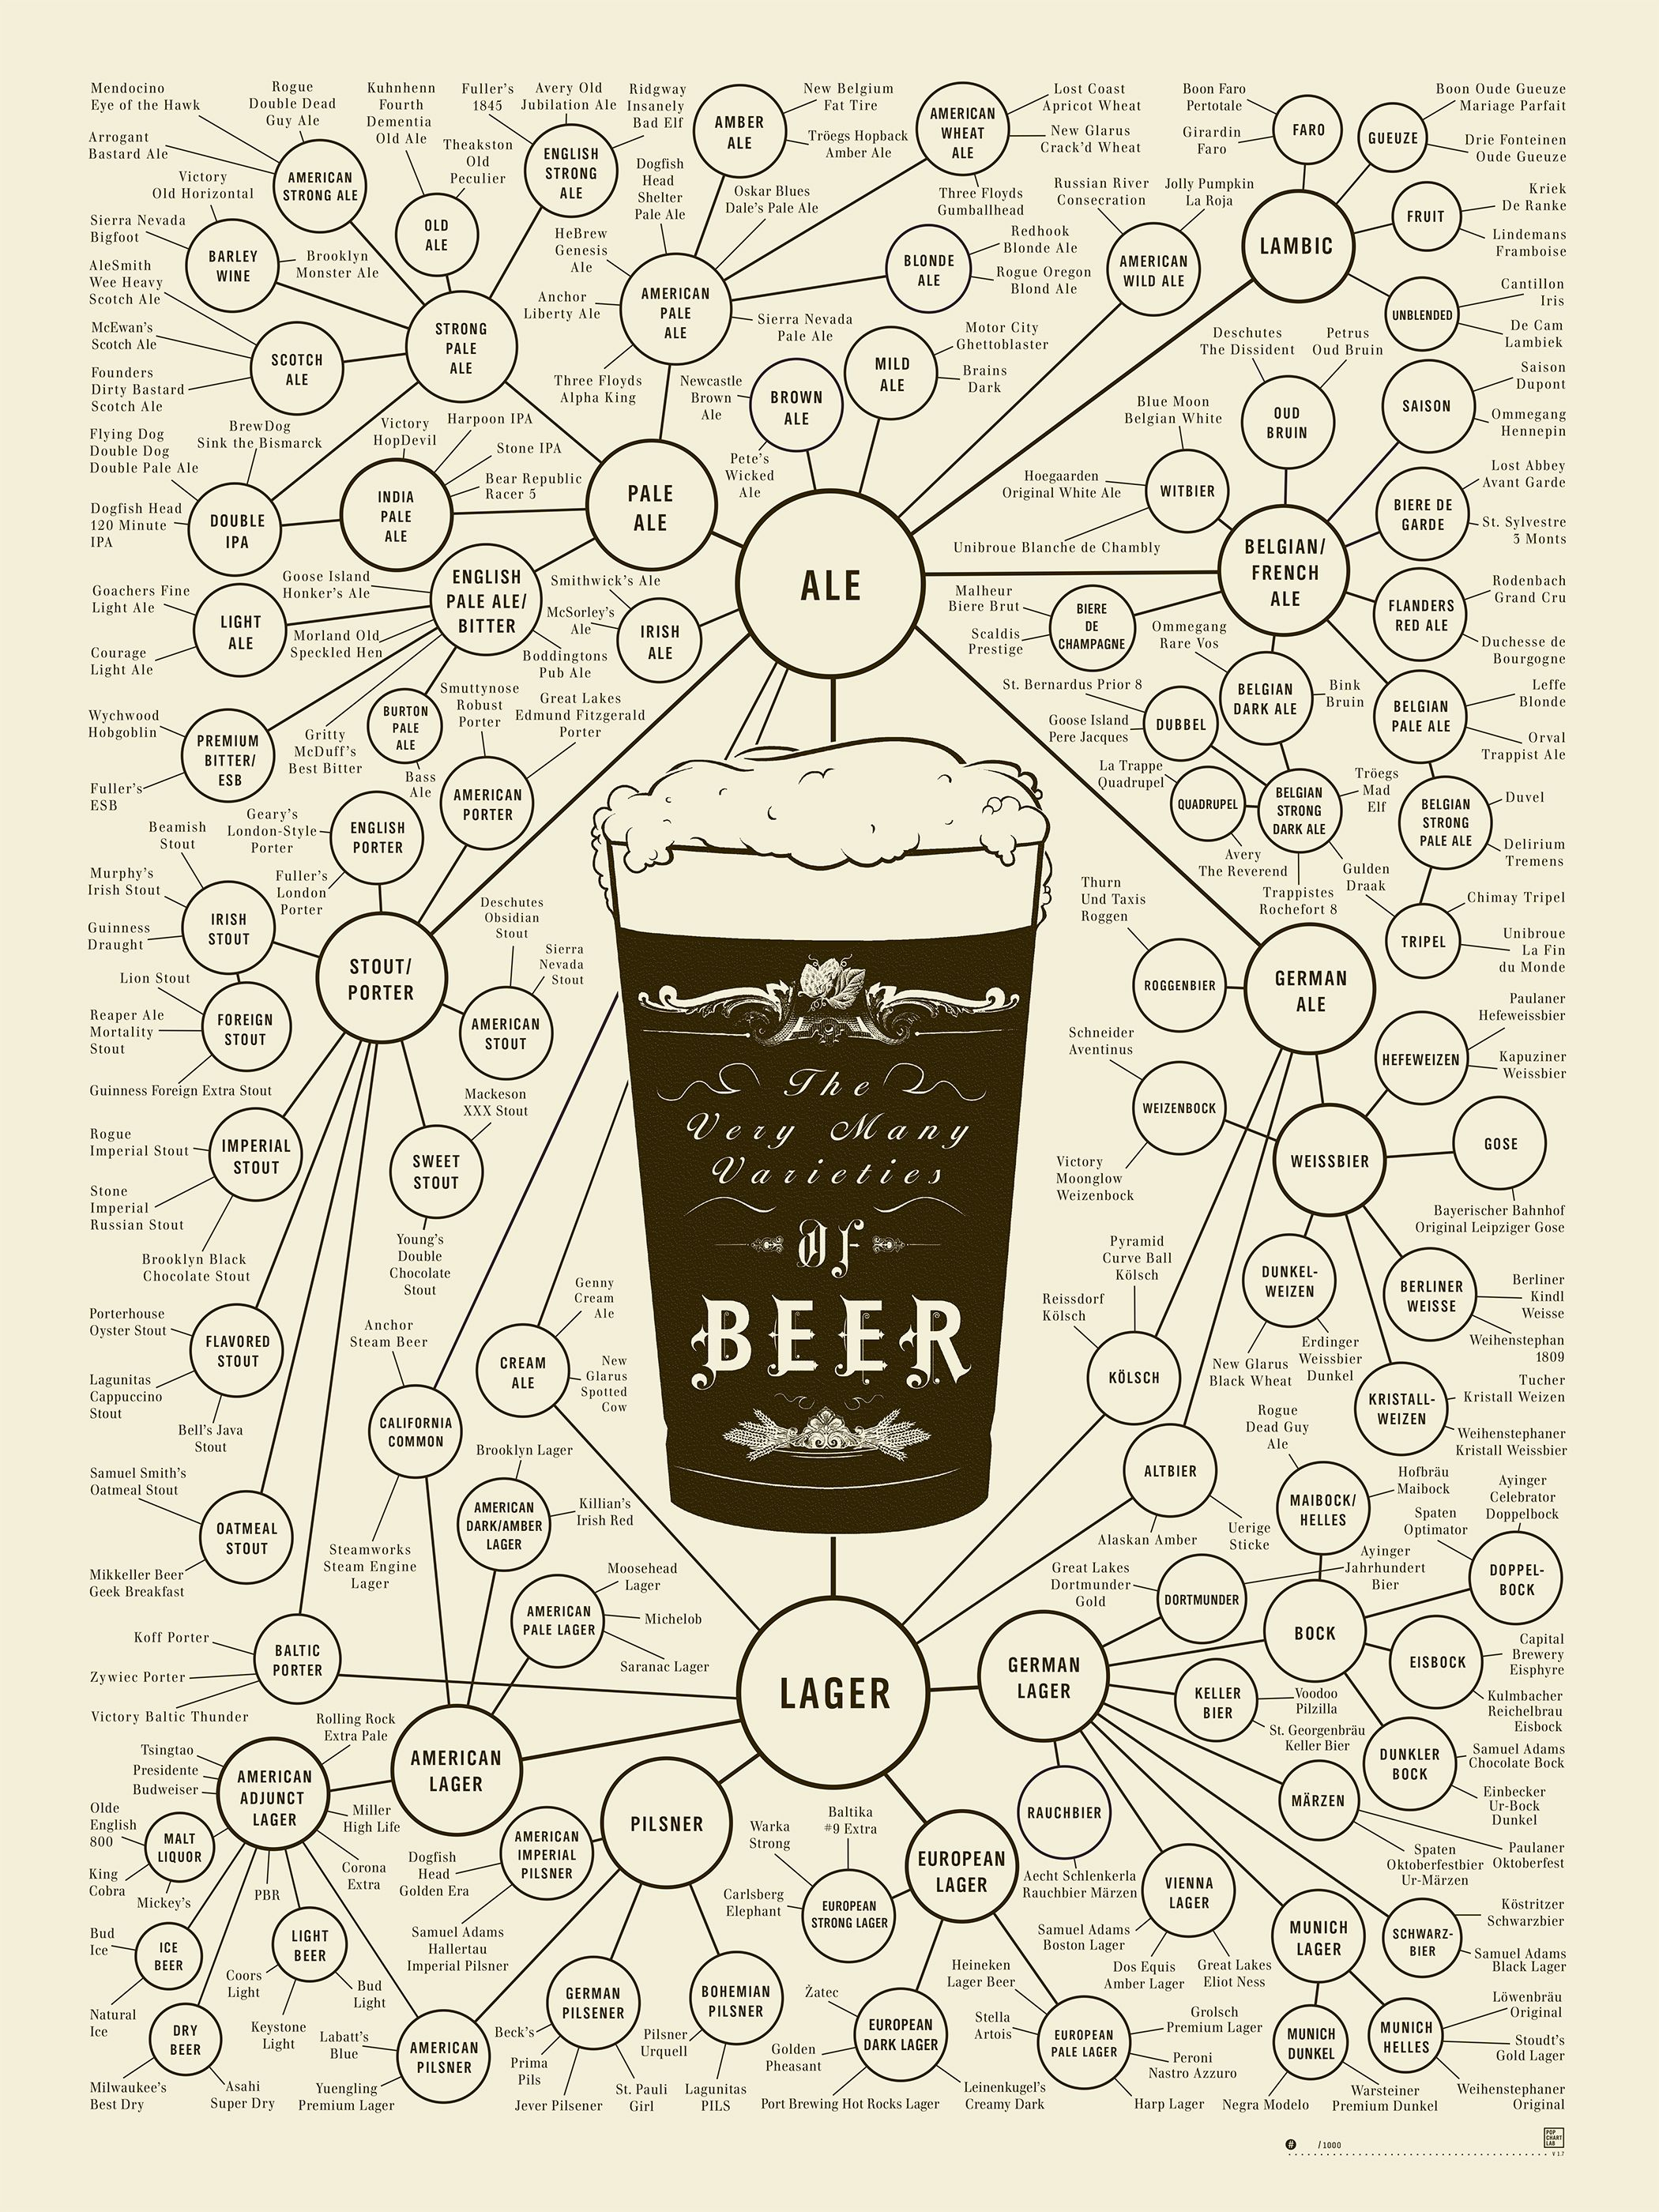 The Very Many Varieties of Beer | Pop charts, Beer and Beer poster